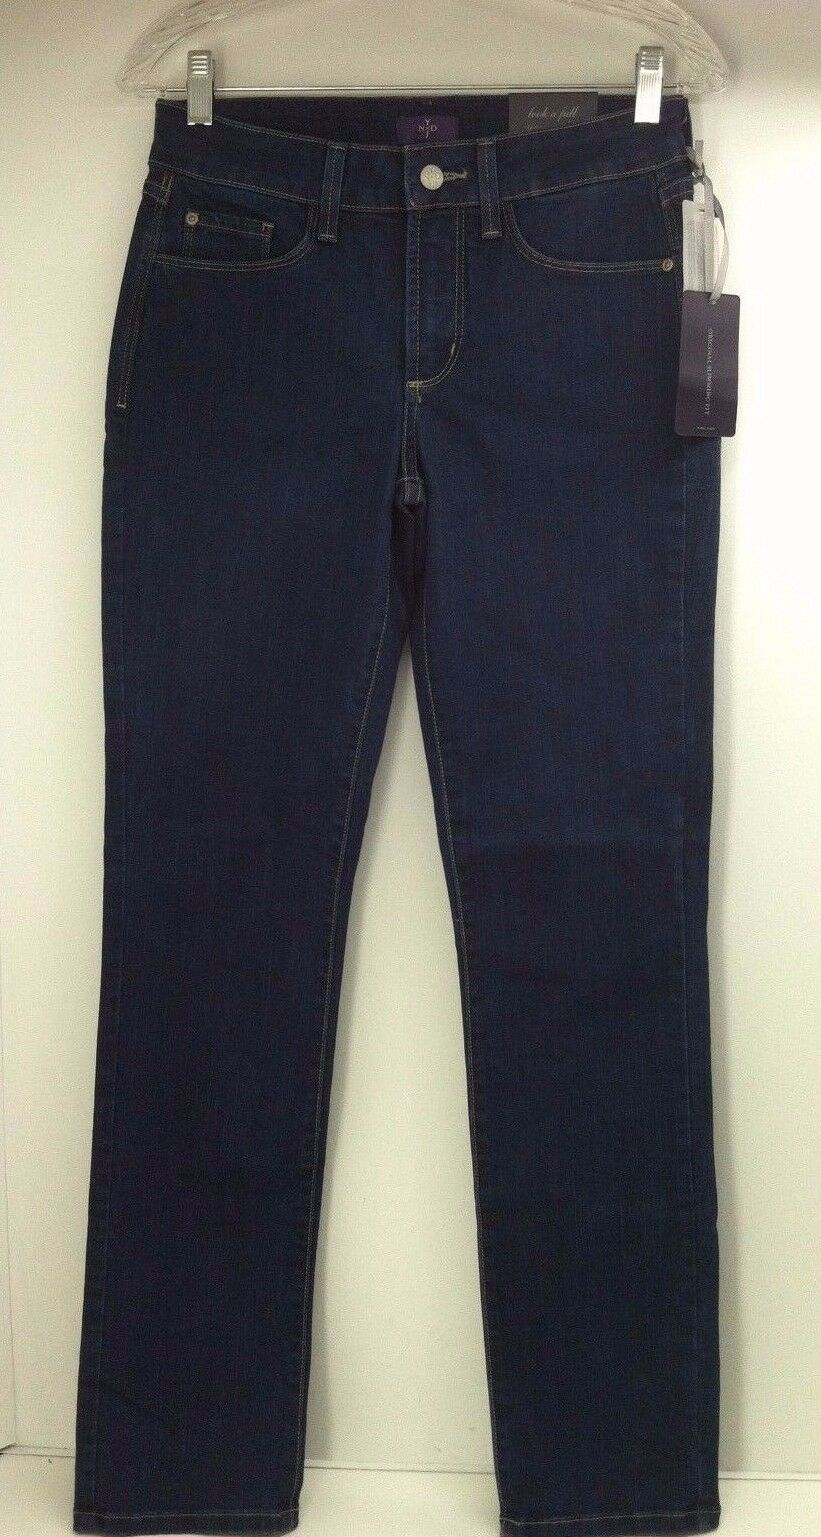 NYDJ Samantha Not Your Daughters Jeans. Dk. bluee Slim Jeans. Size 2